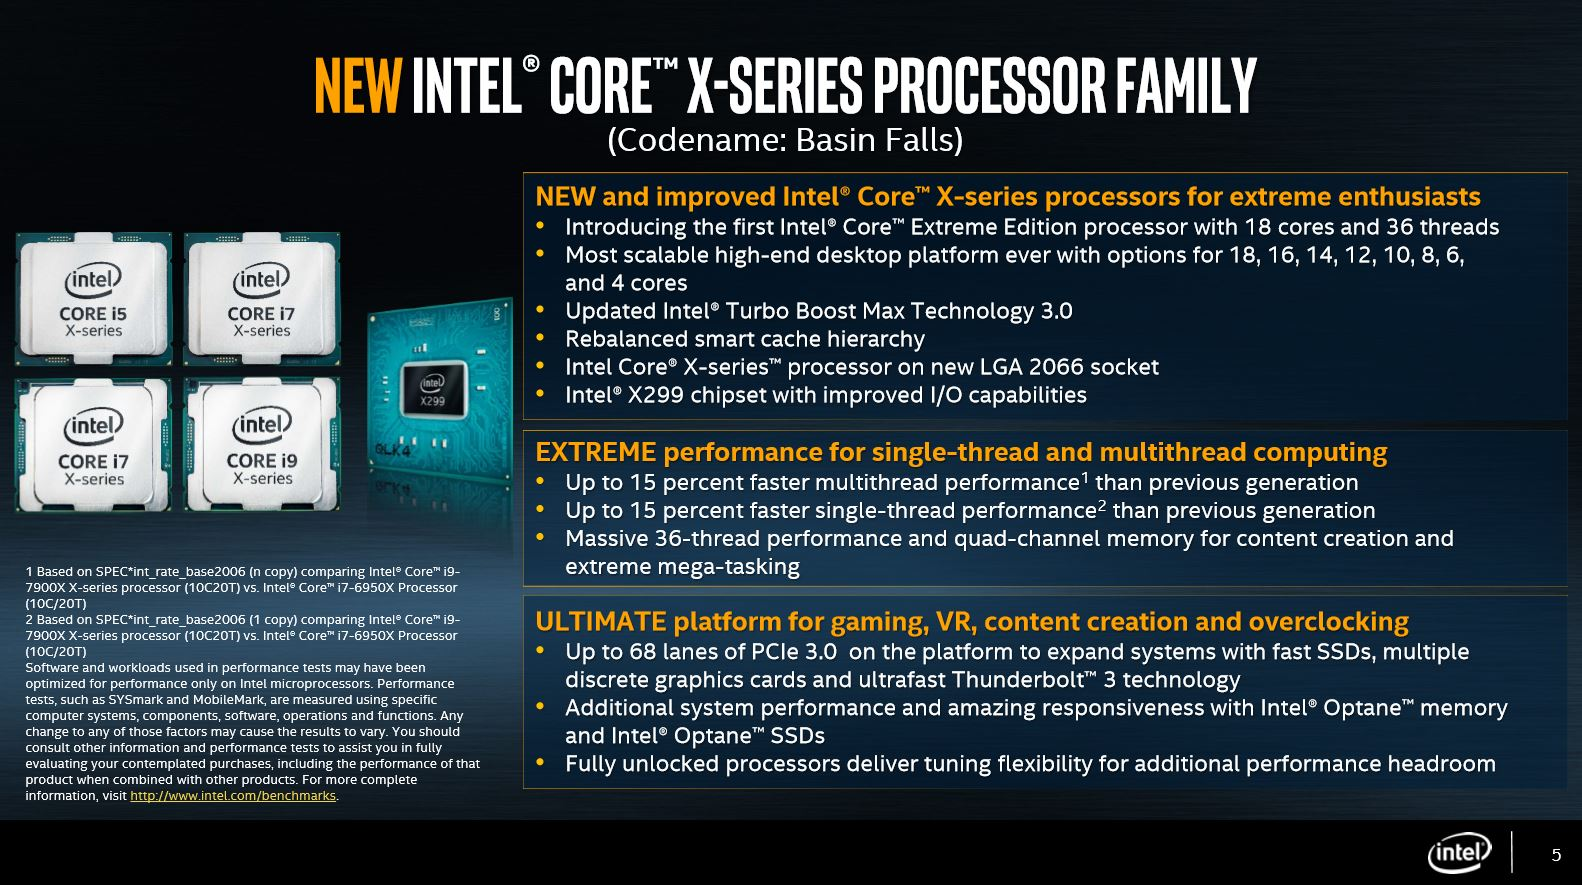 Intel unveils the rest of the Core i9 X-series family